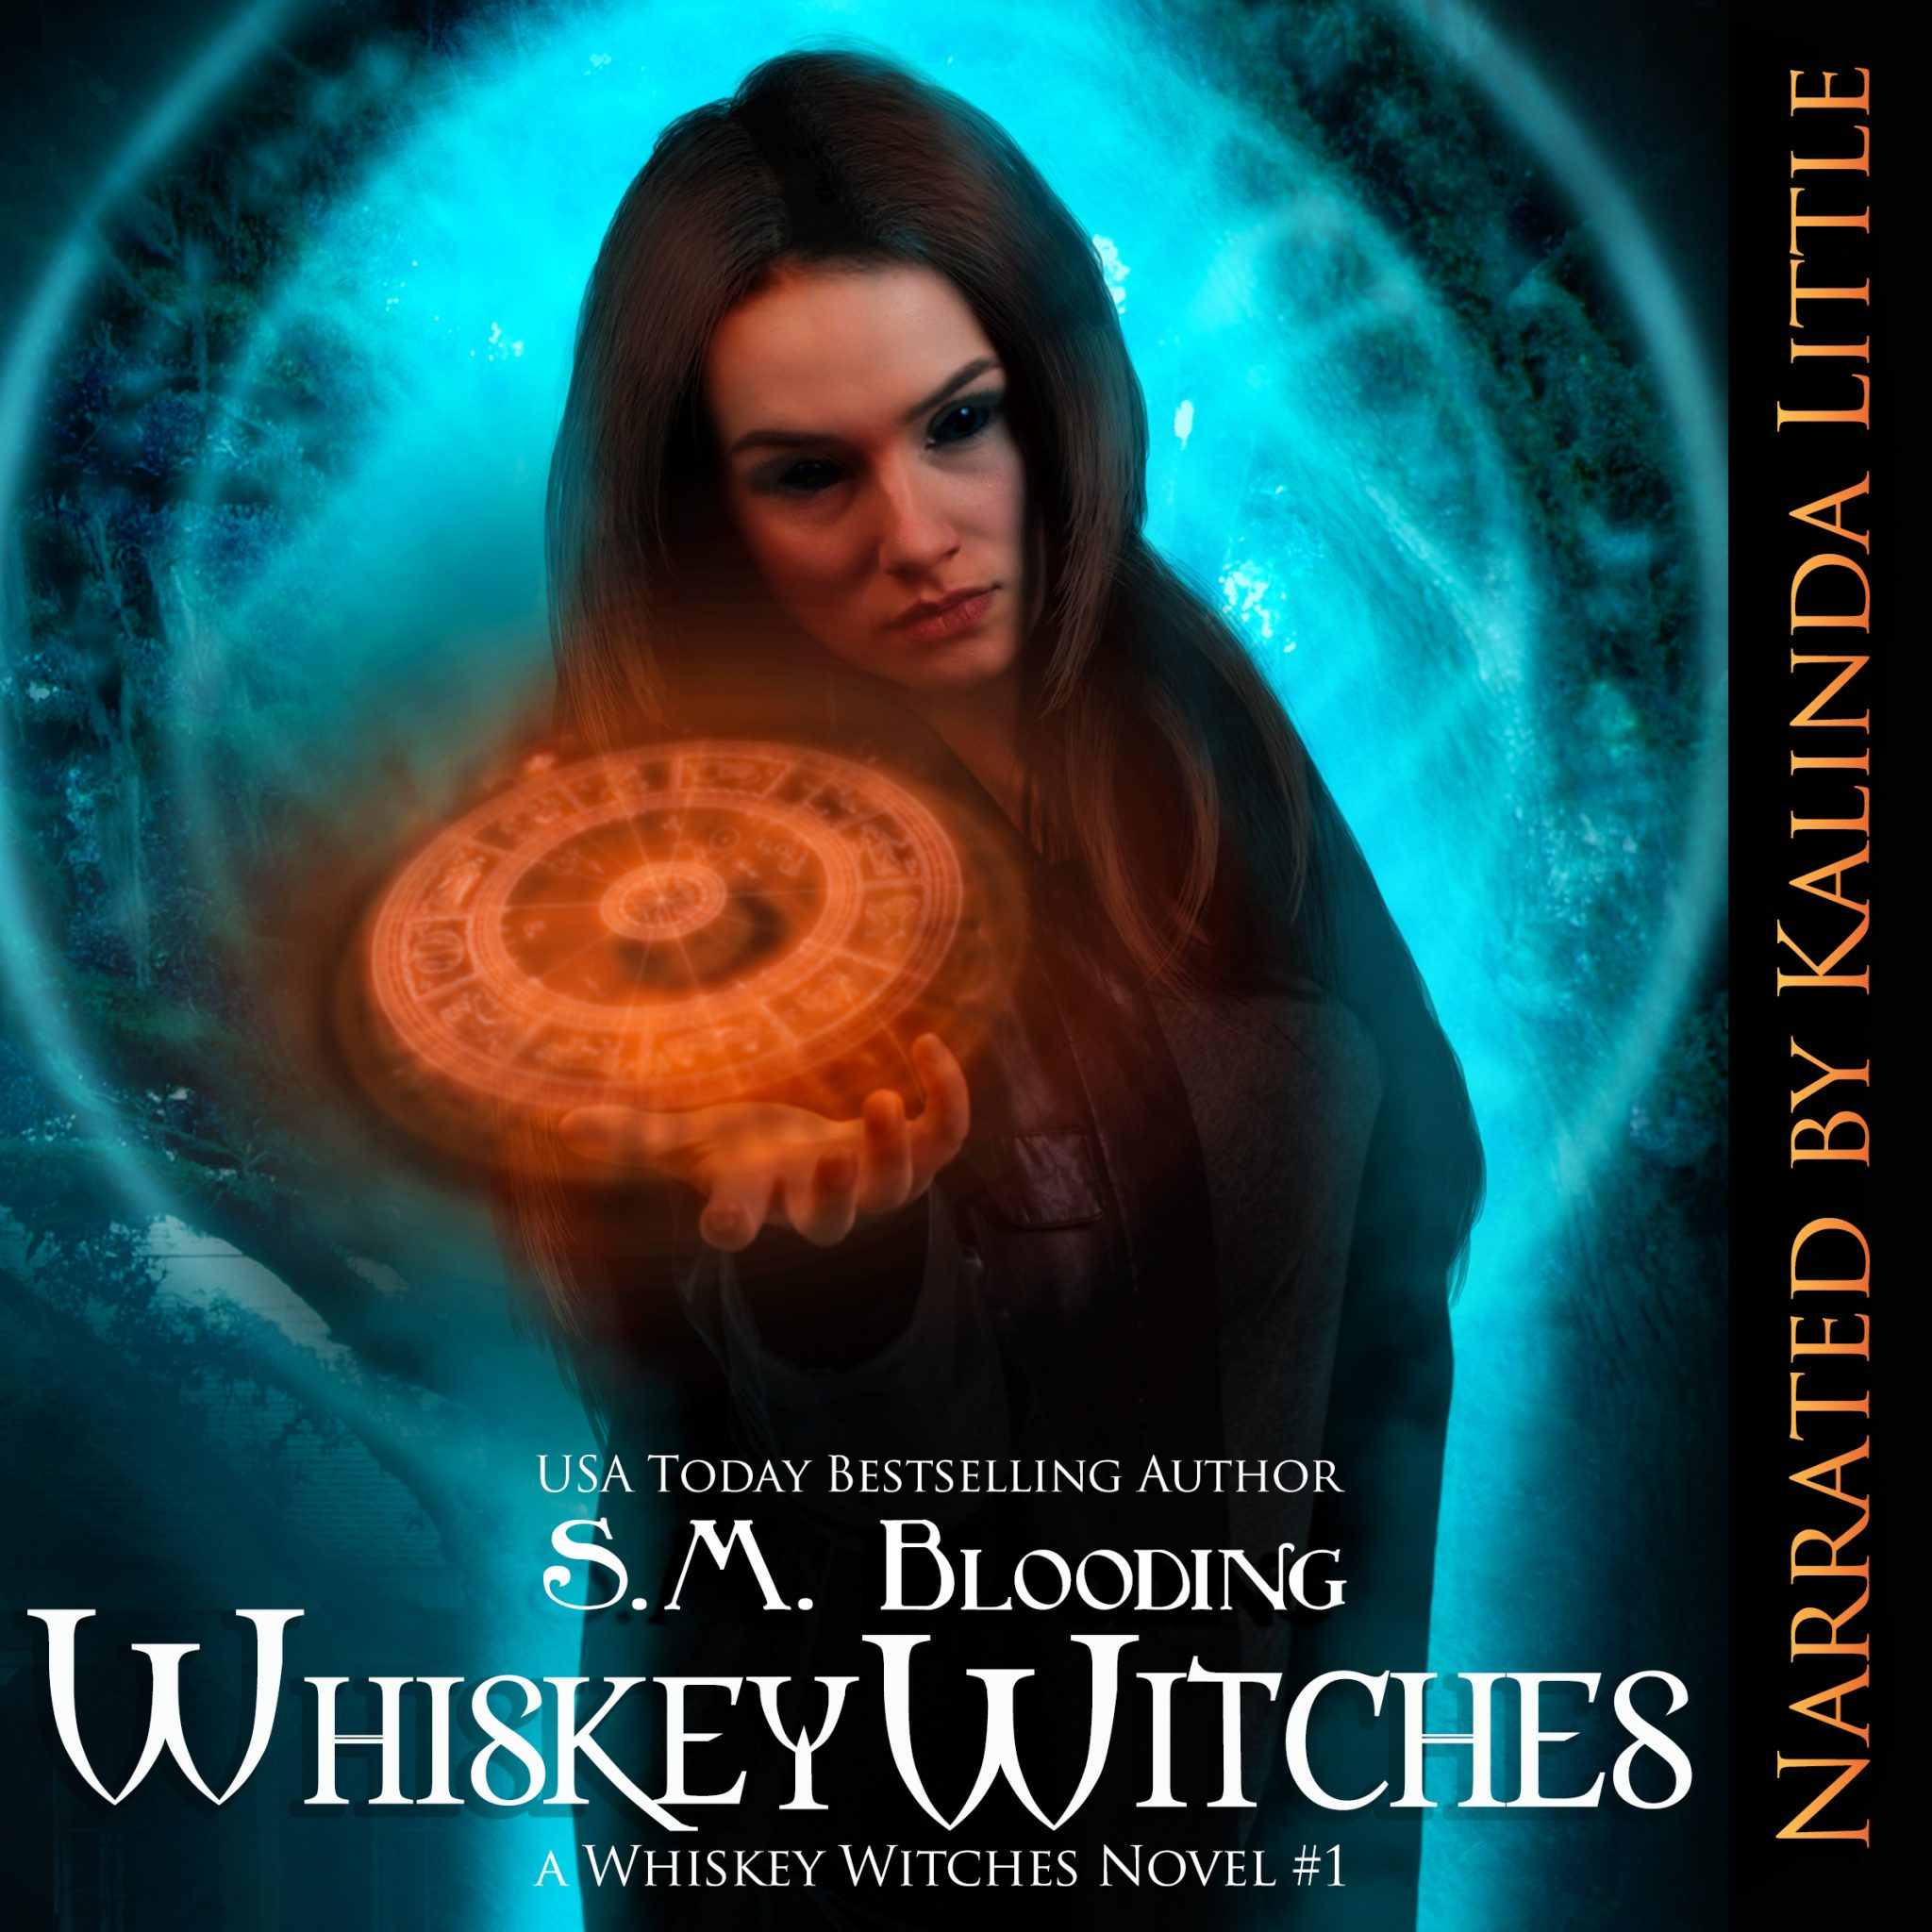 Whiskey Witches Audiobook Tour